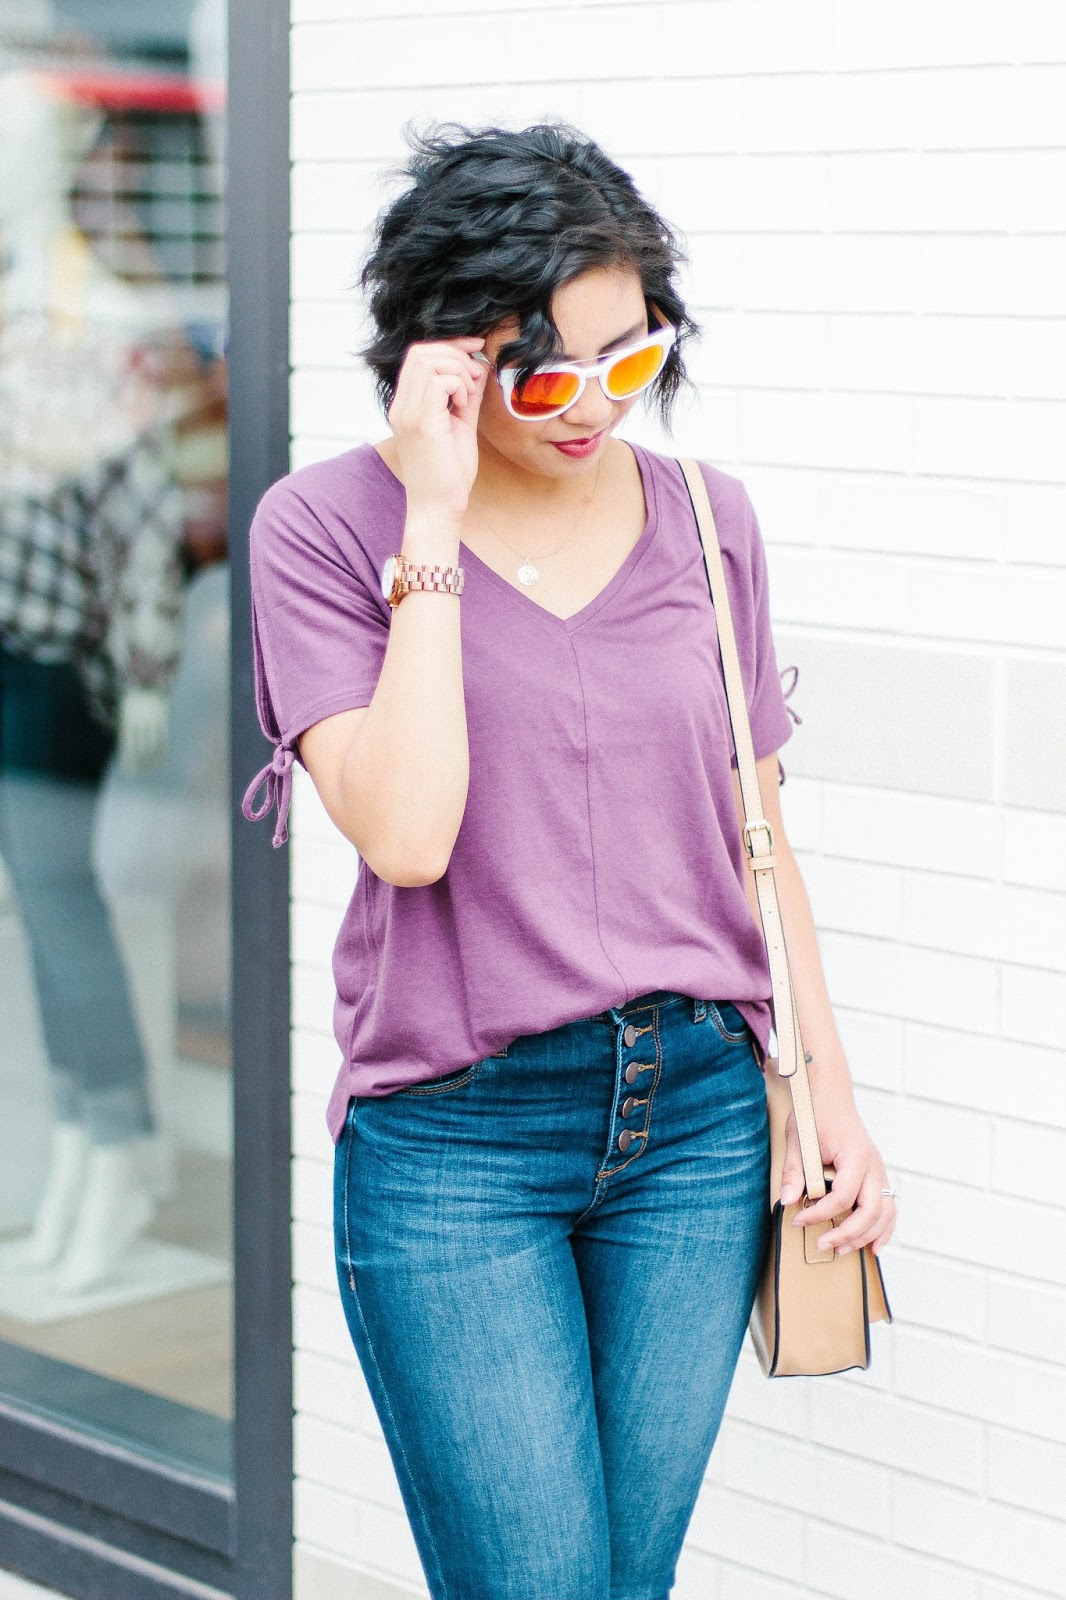 The Outfit To Wear To Transition Into Fall